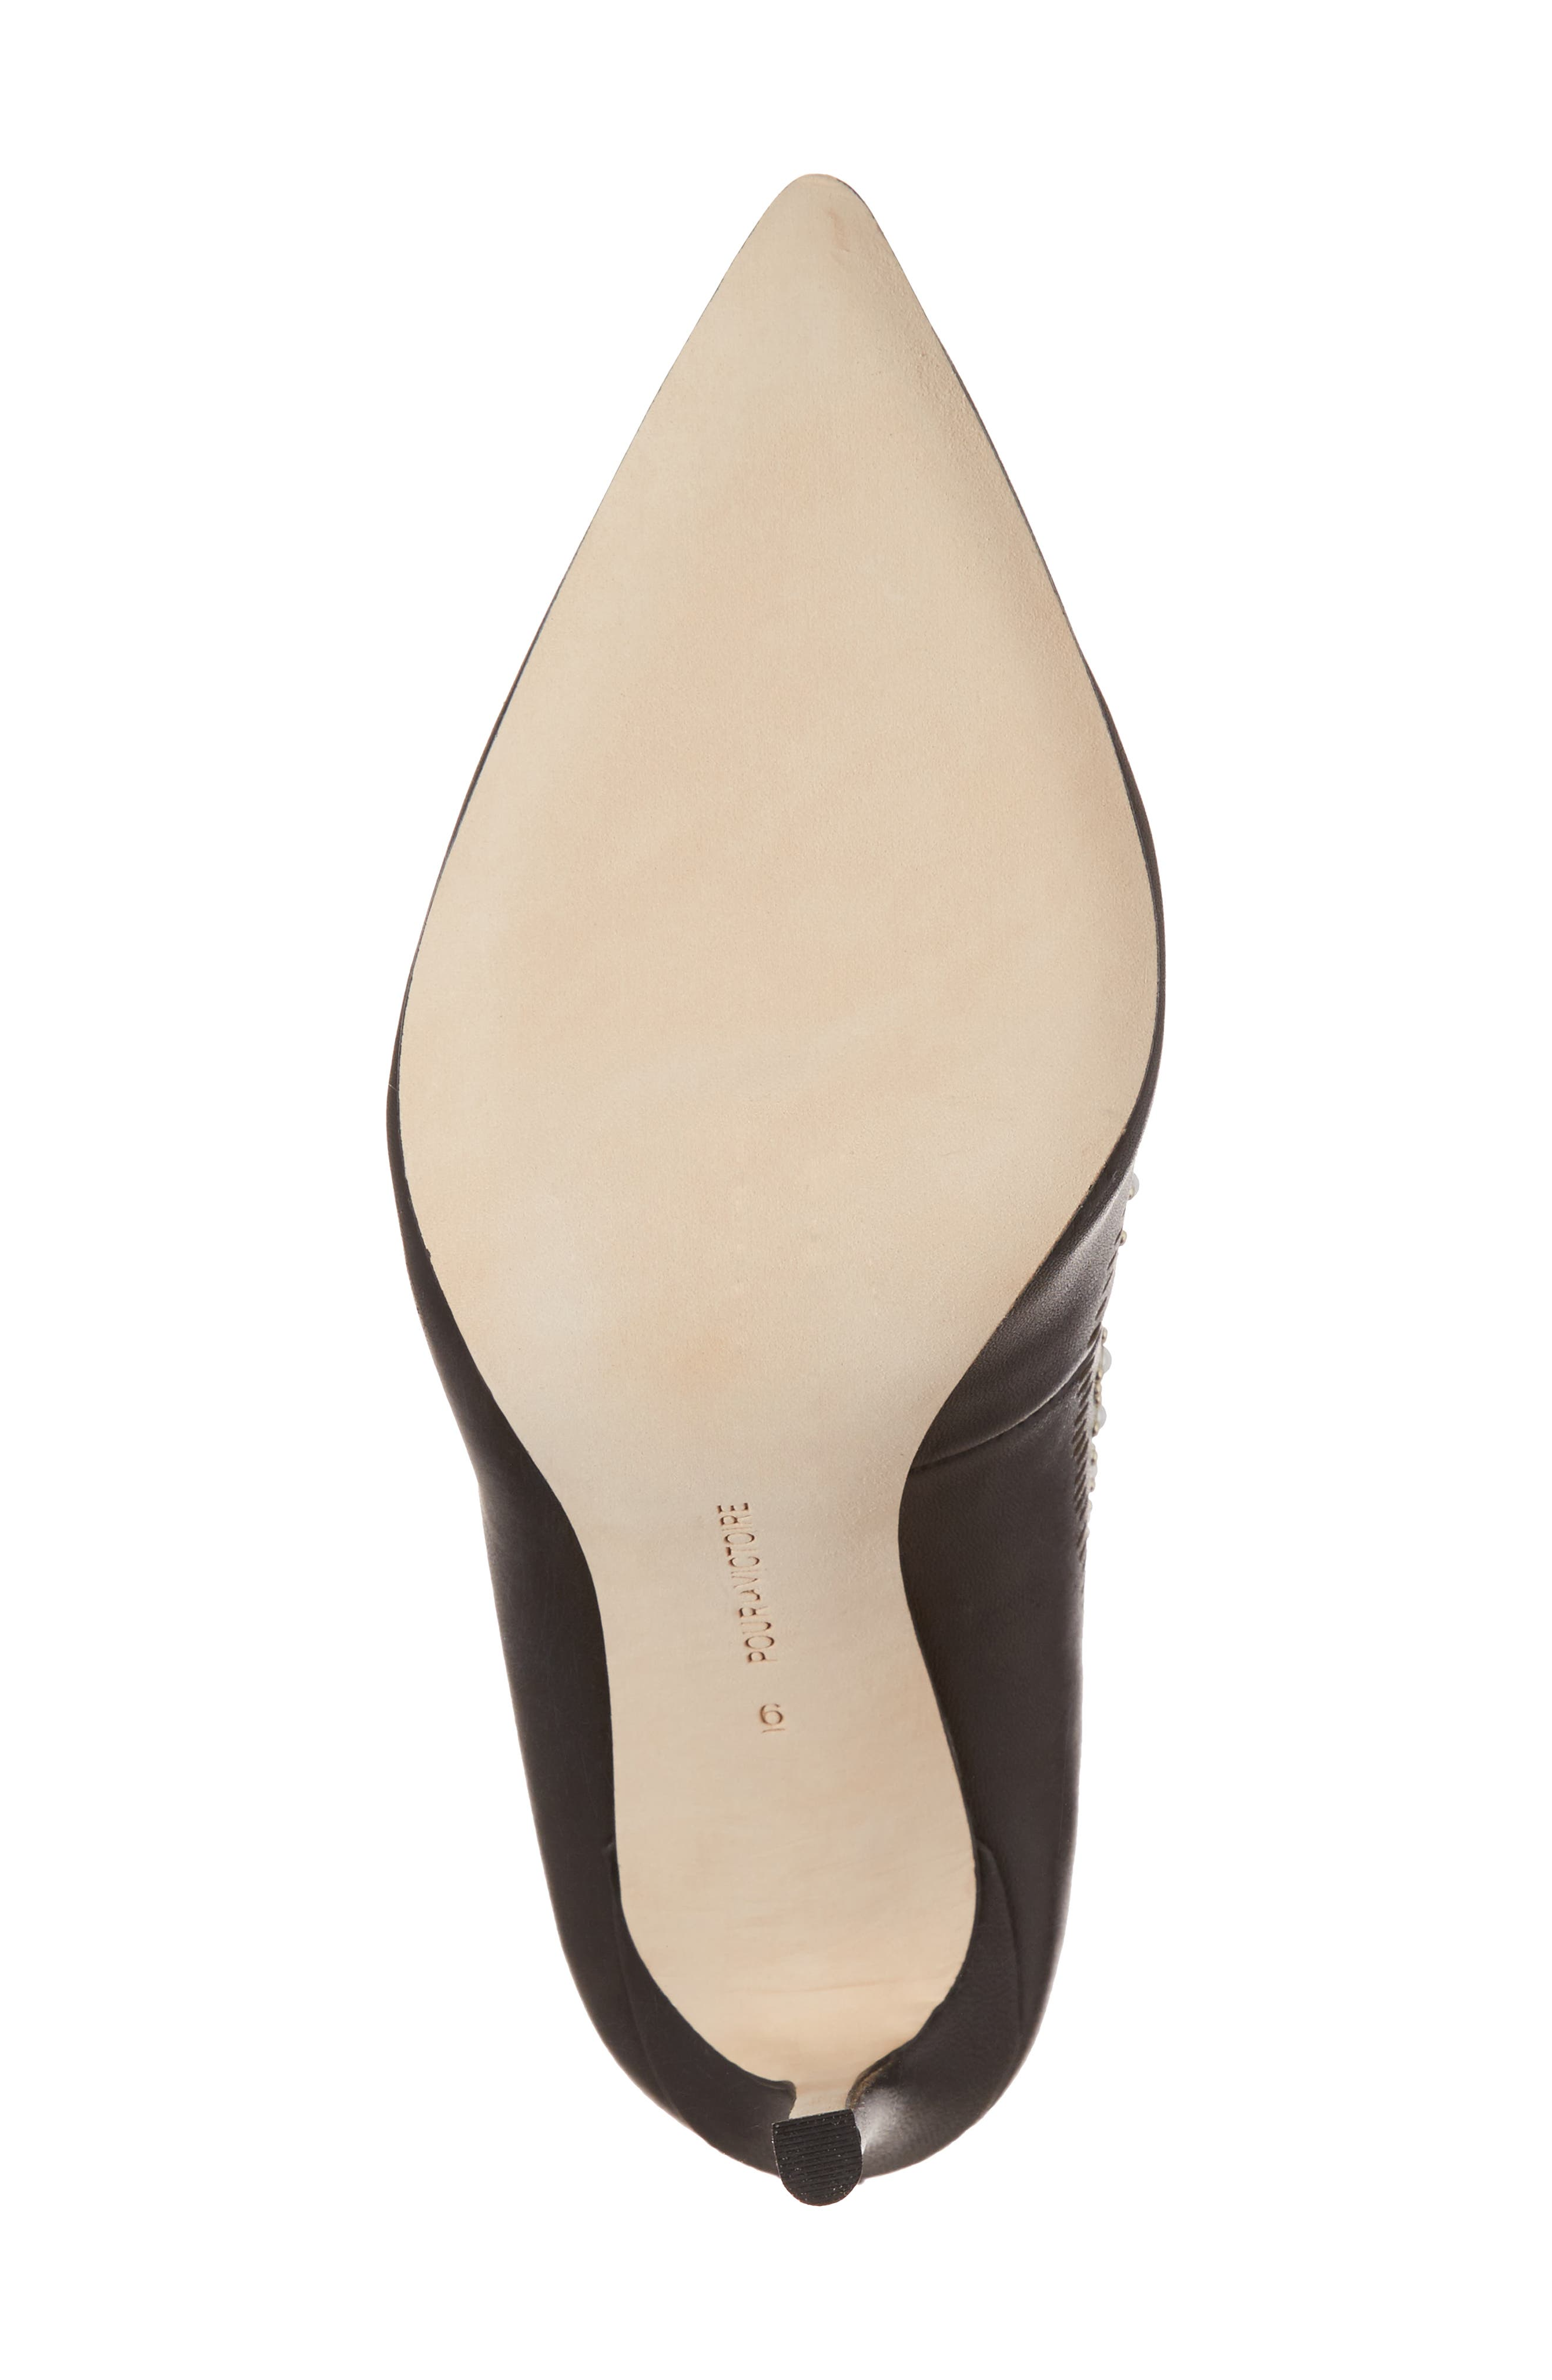 Cerella Embellished Pump,                             Alternate thumbnail 6, color,                             Black Leather